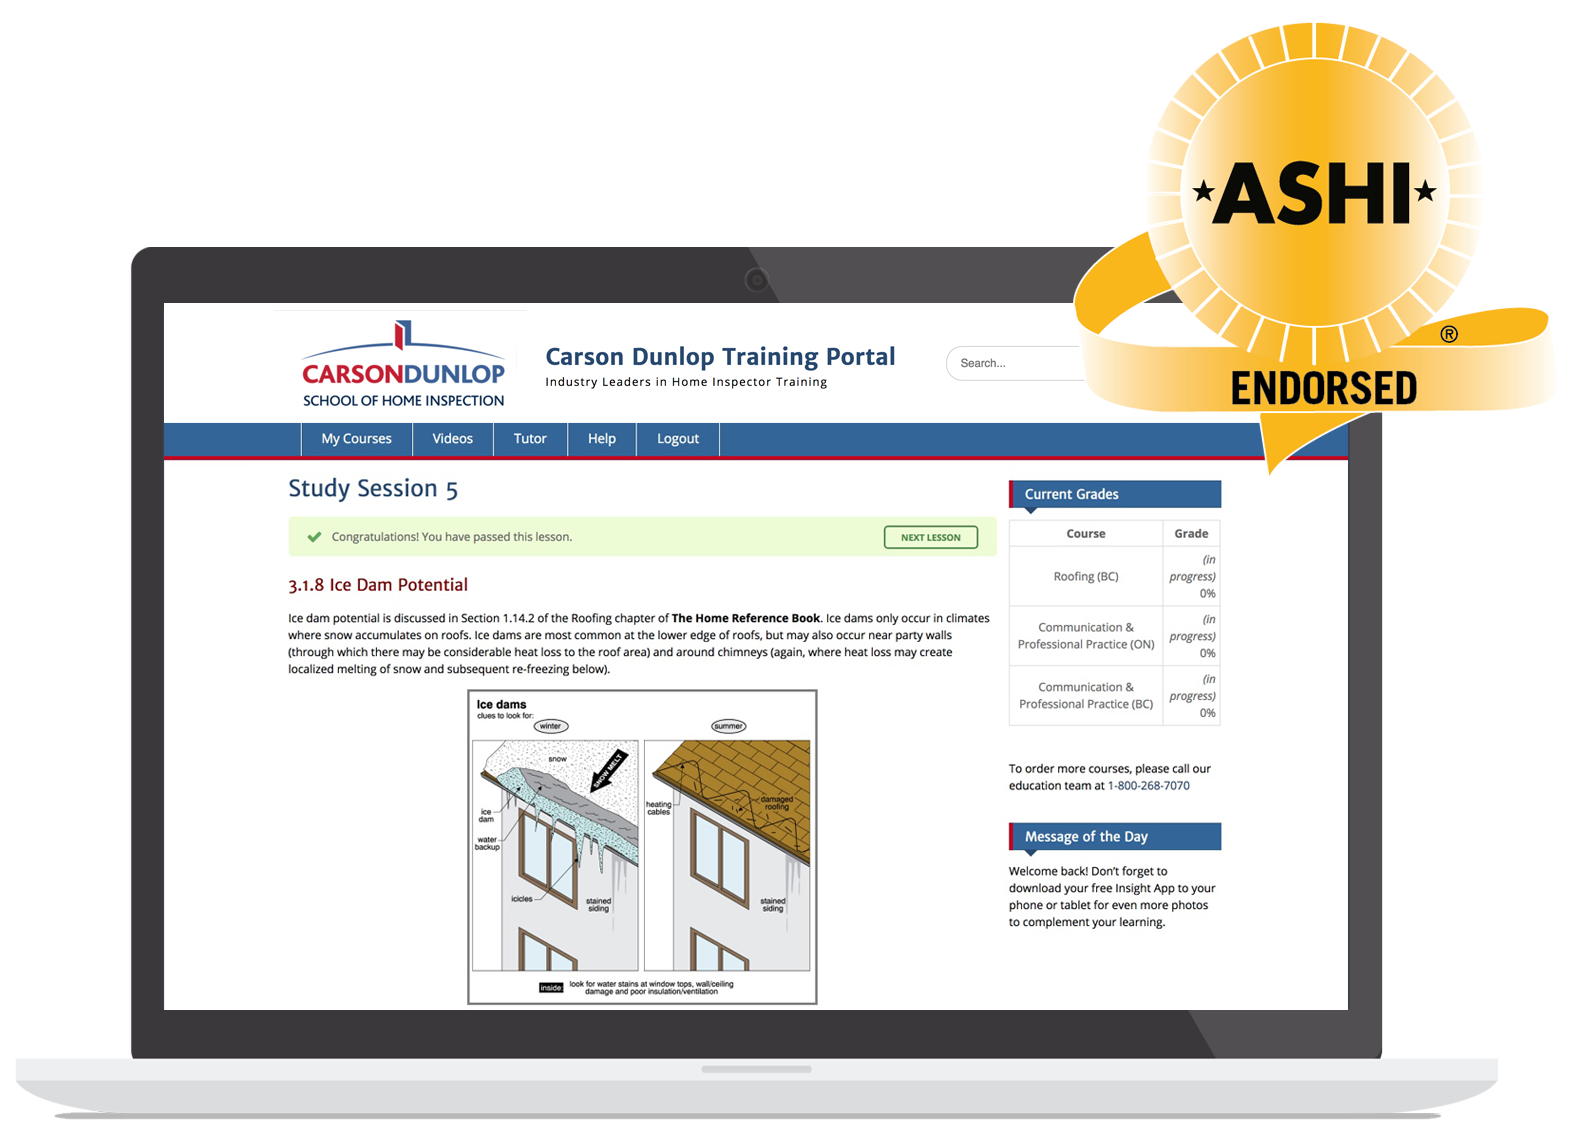 A grouping of home inspection training program materials including online display, ASHI endorsed